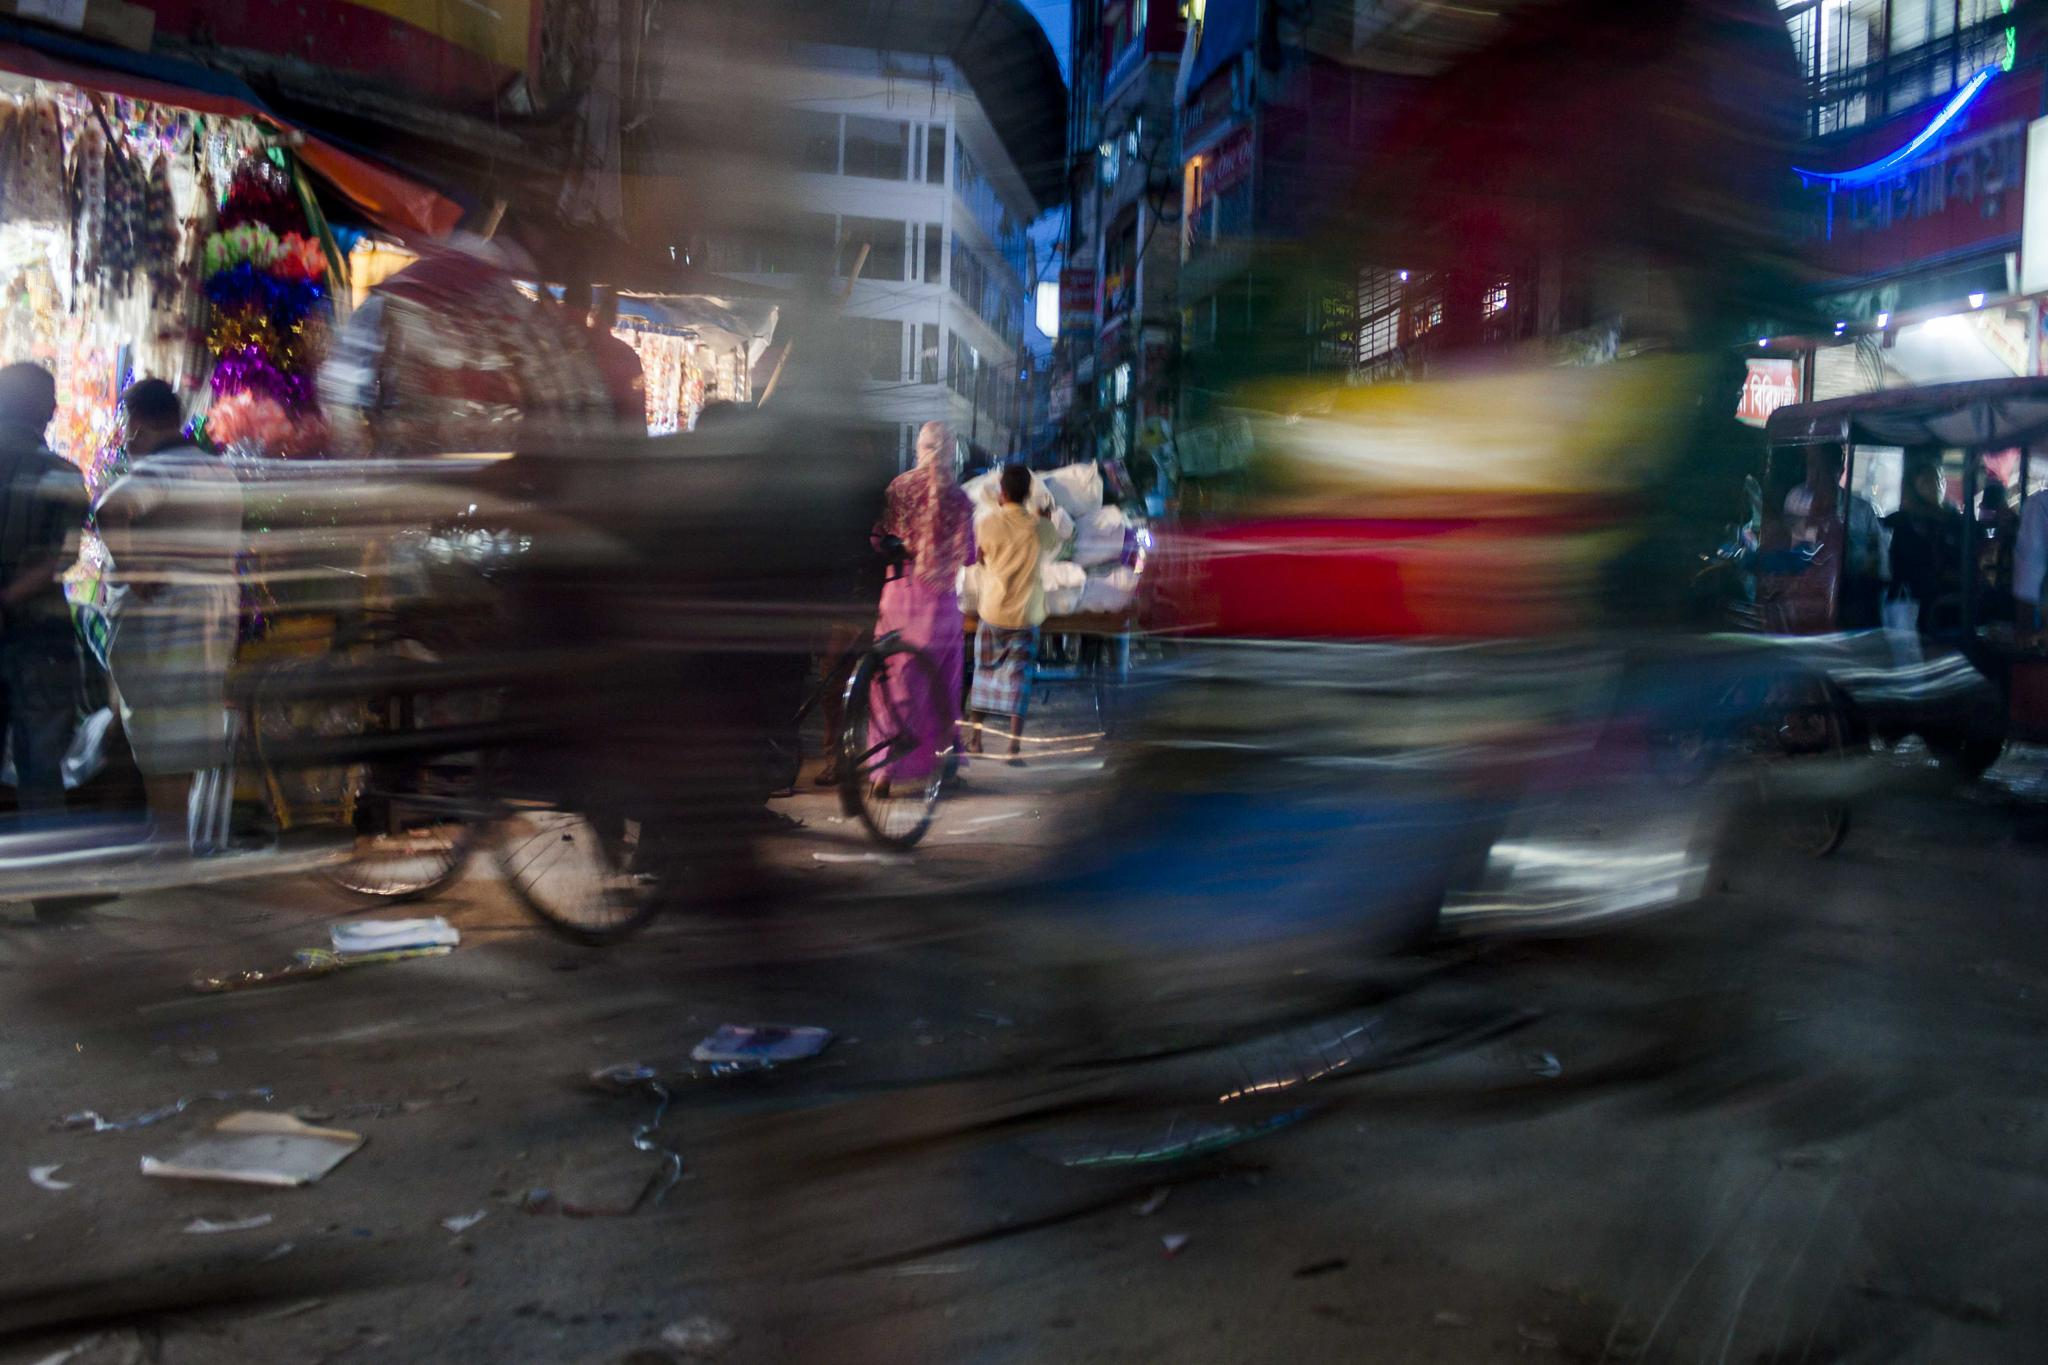 Dhaka At Night. by alinoton